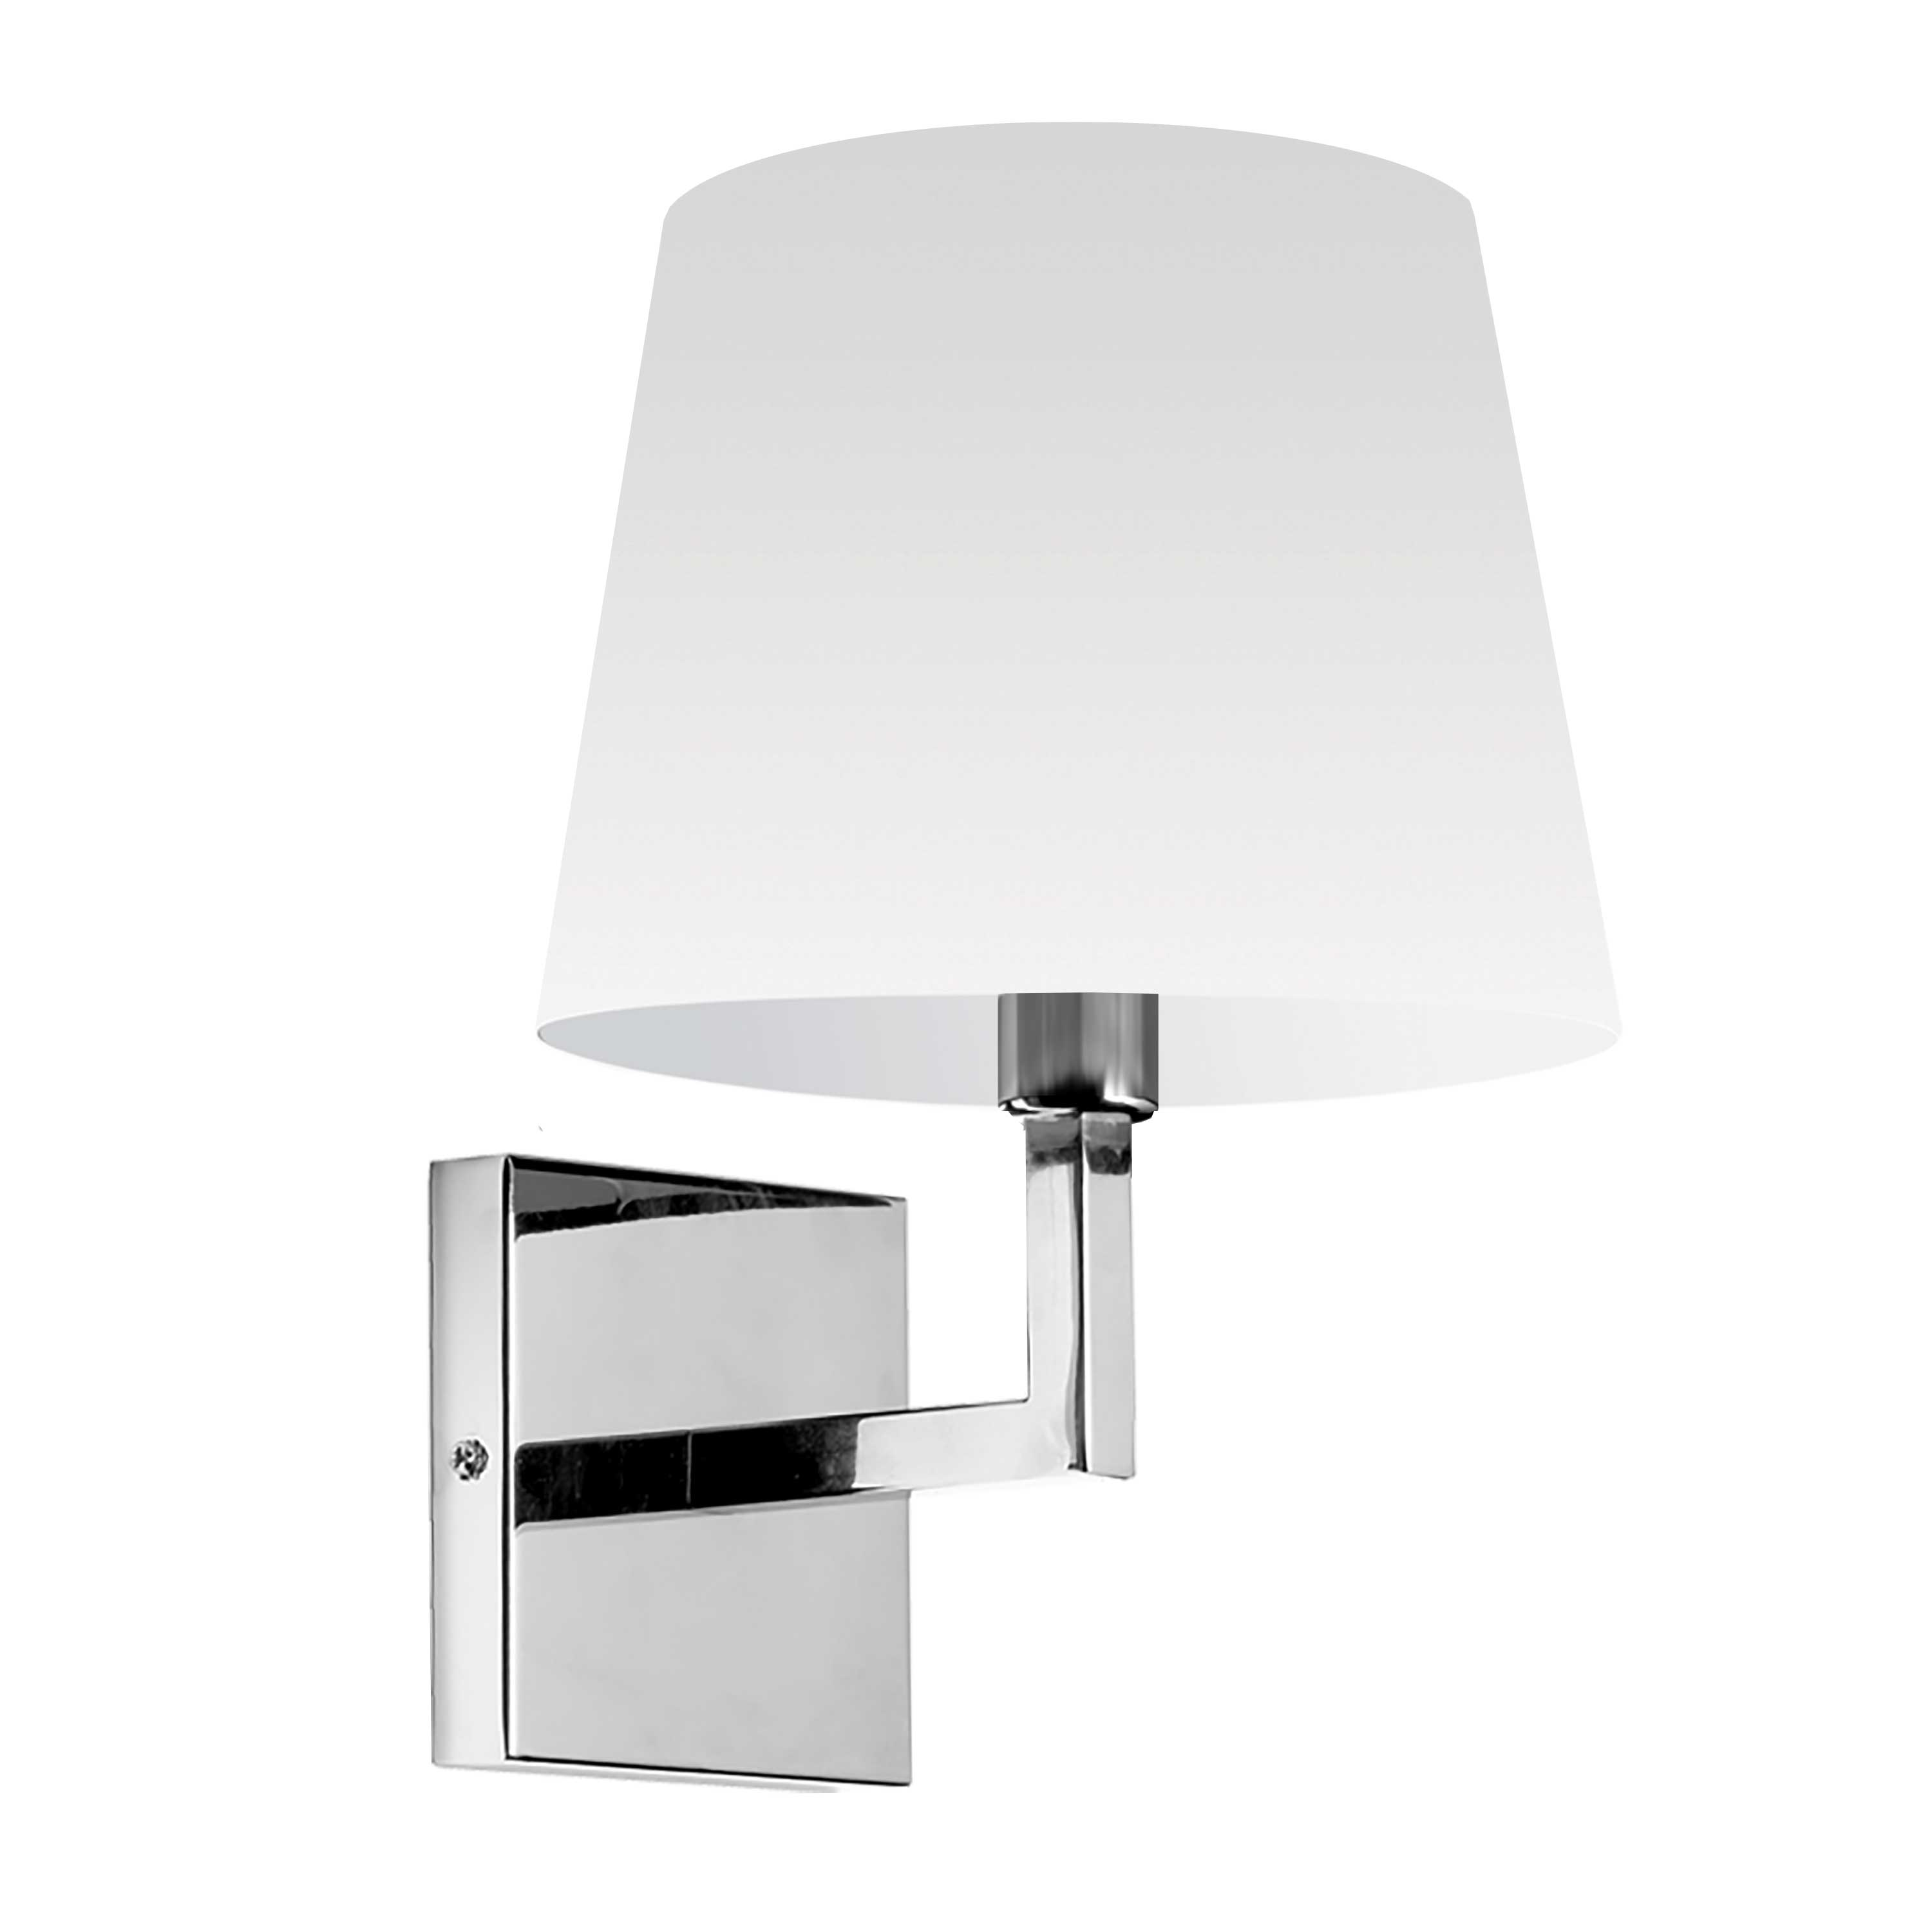 1LT Incandescent Wall Sconce,  PC w/ White Shade